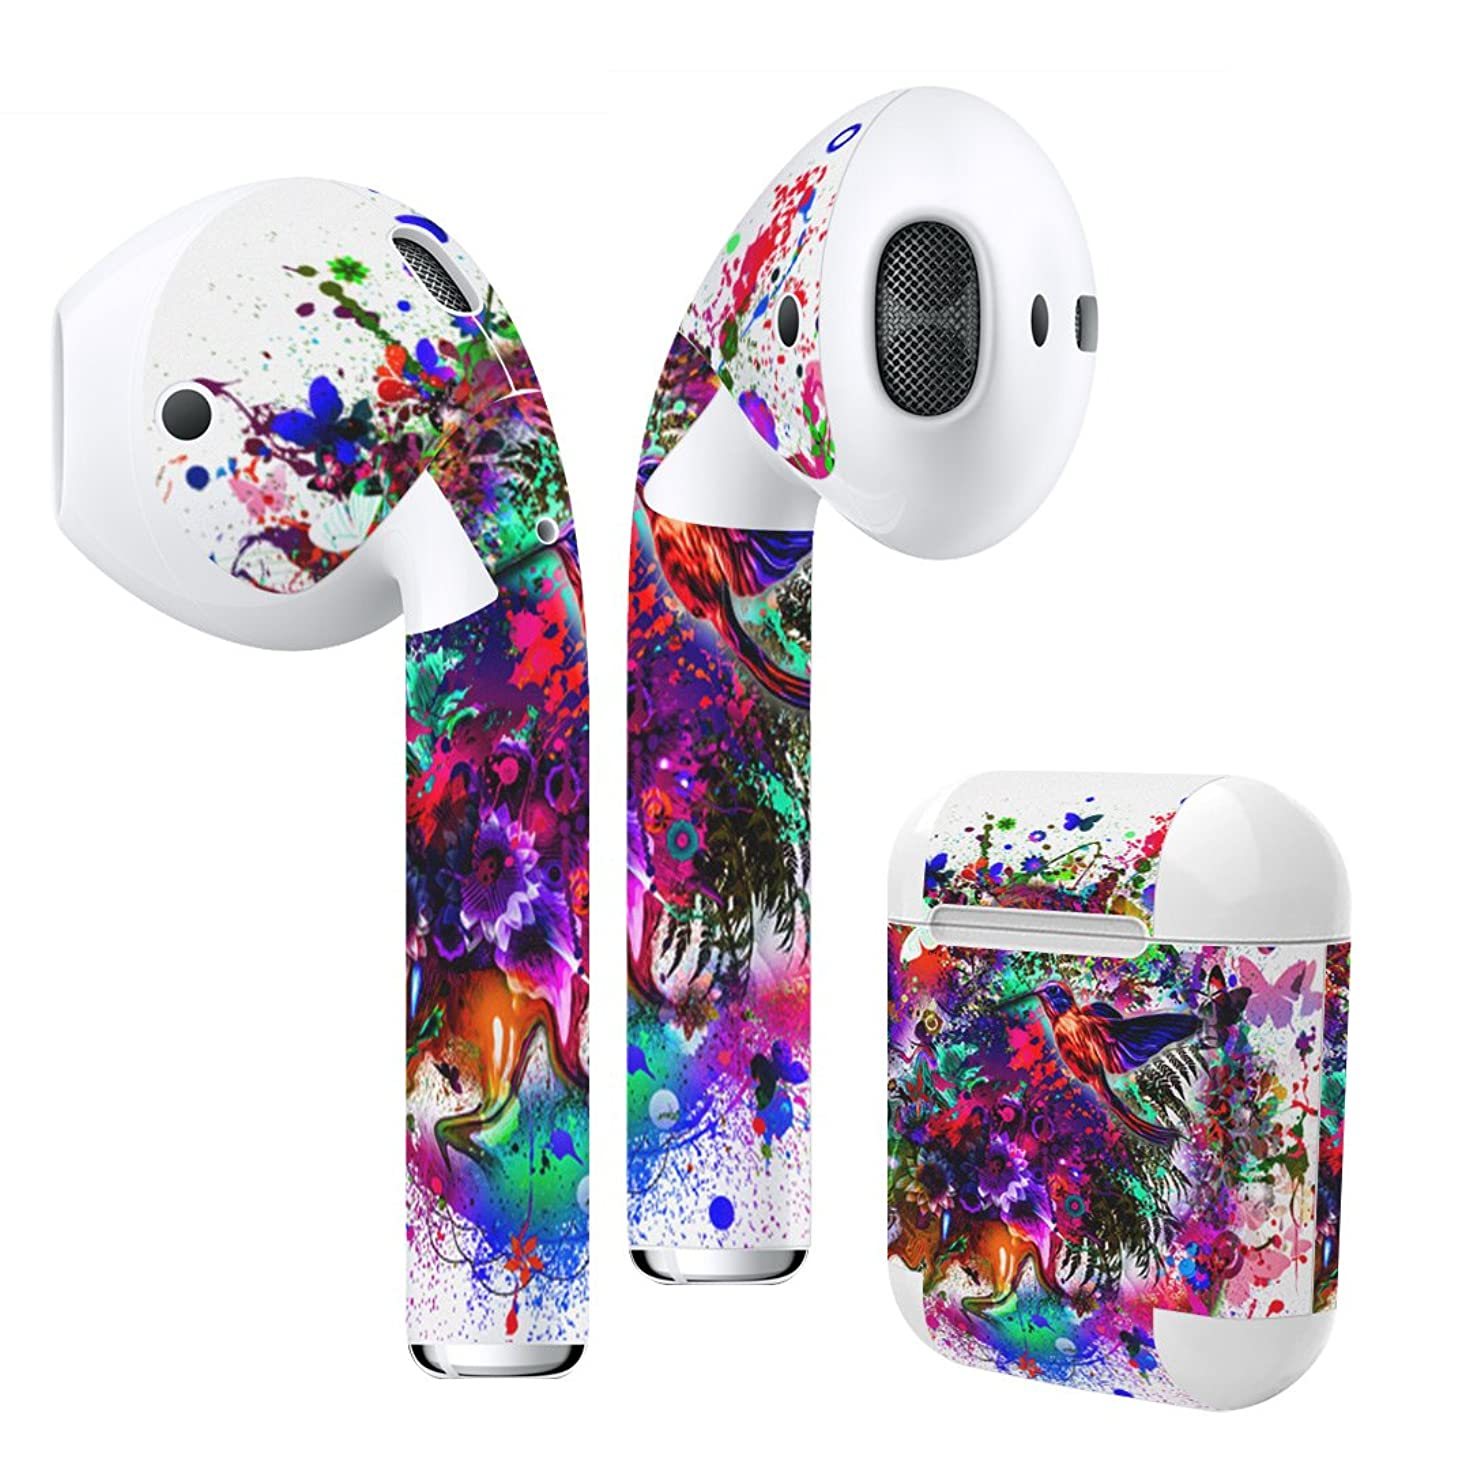 Airpods Skin + Case Skin Sticker Skin Decal for airpod Compatible with AirPods 1st(2016) and 2nd(2019) Stylish Covers for Protection & Customization 012273